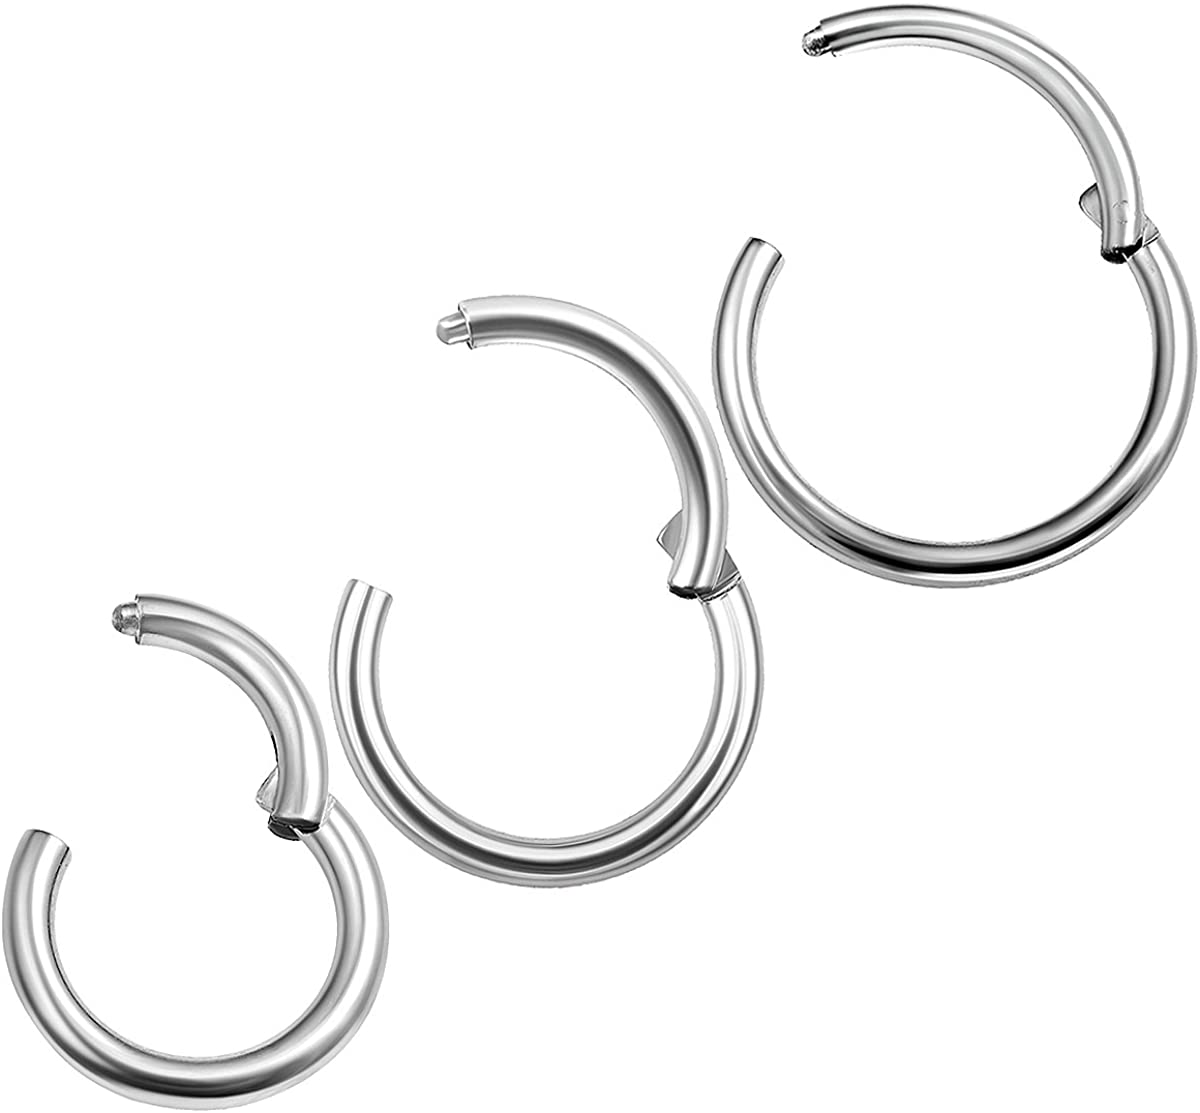 2Pcs Surgical Steel 14 Gauge 8mm 10mm Hinged Segmented Ring Piercing Jewelry Cartilage Helix Septum Tragus Nose M3129